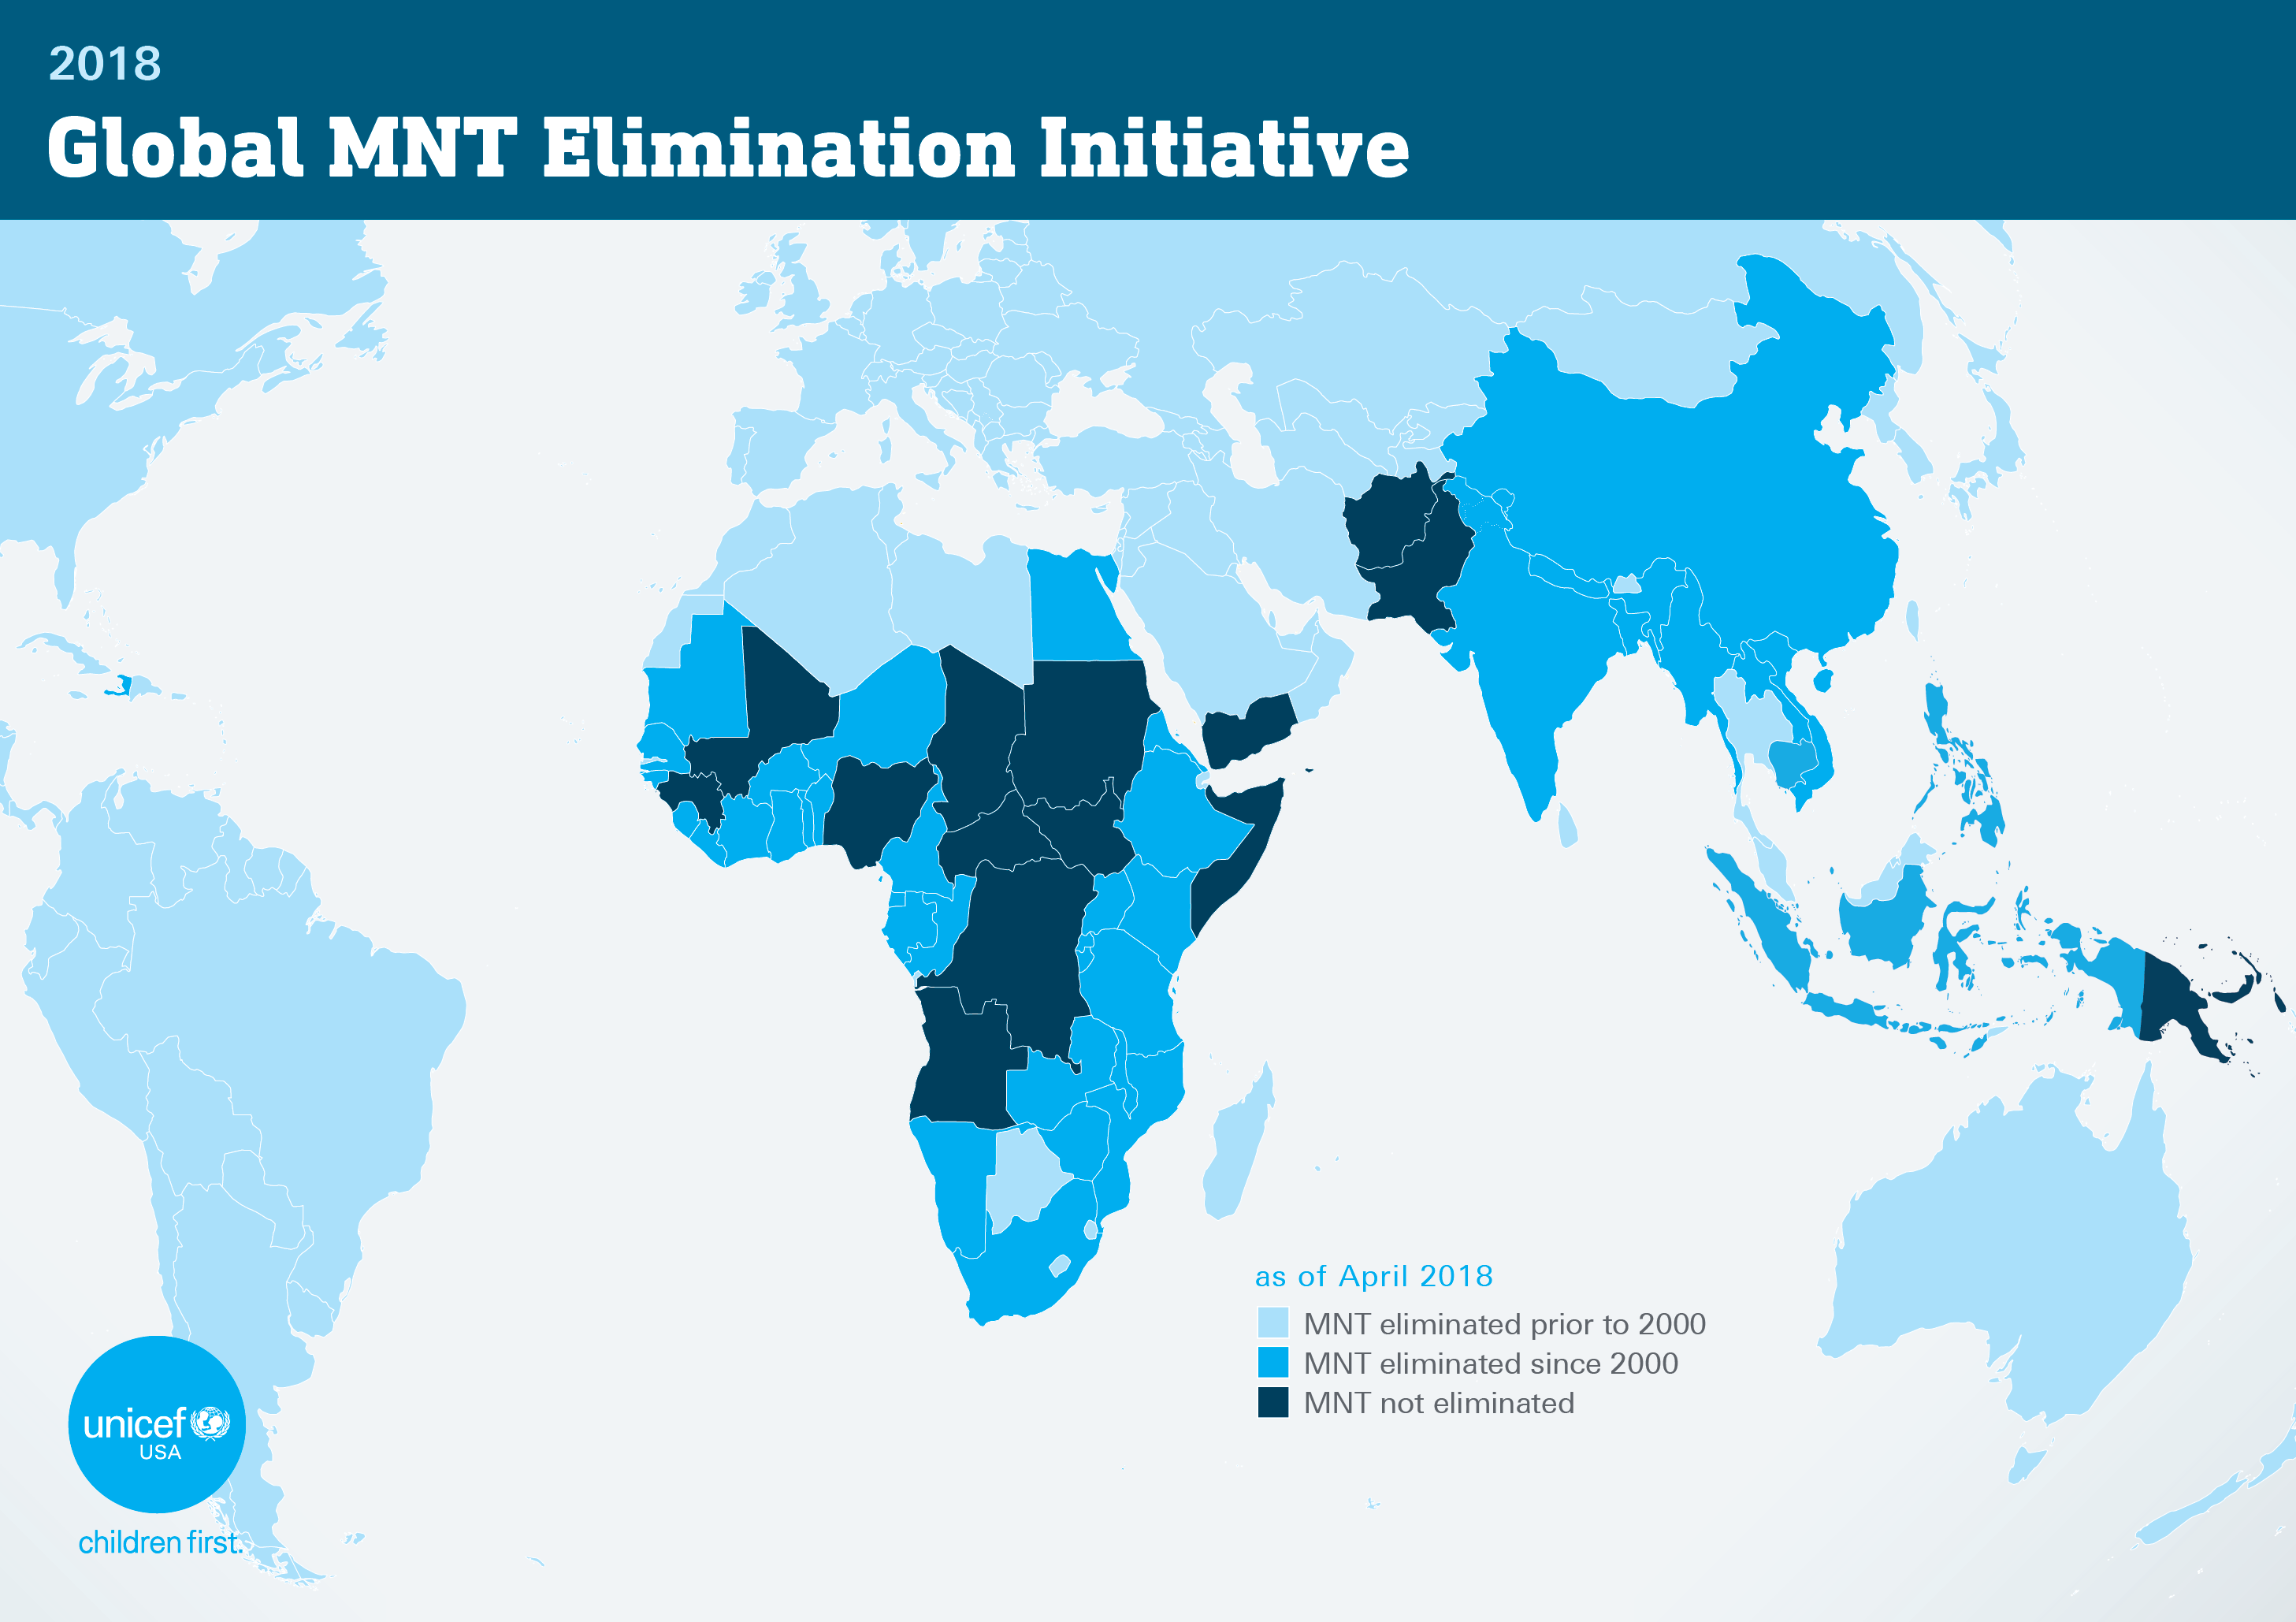 World map of countries where maternal and neonatal tetanus still hasn't been eliminated.